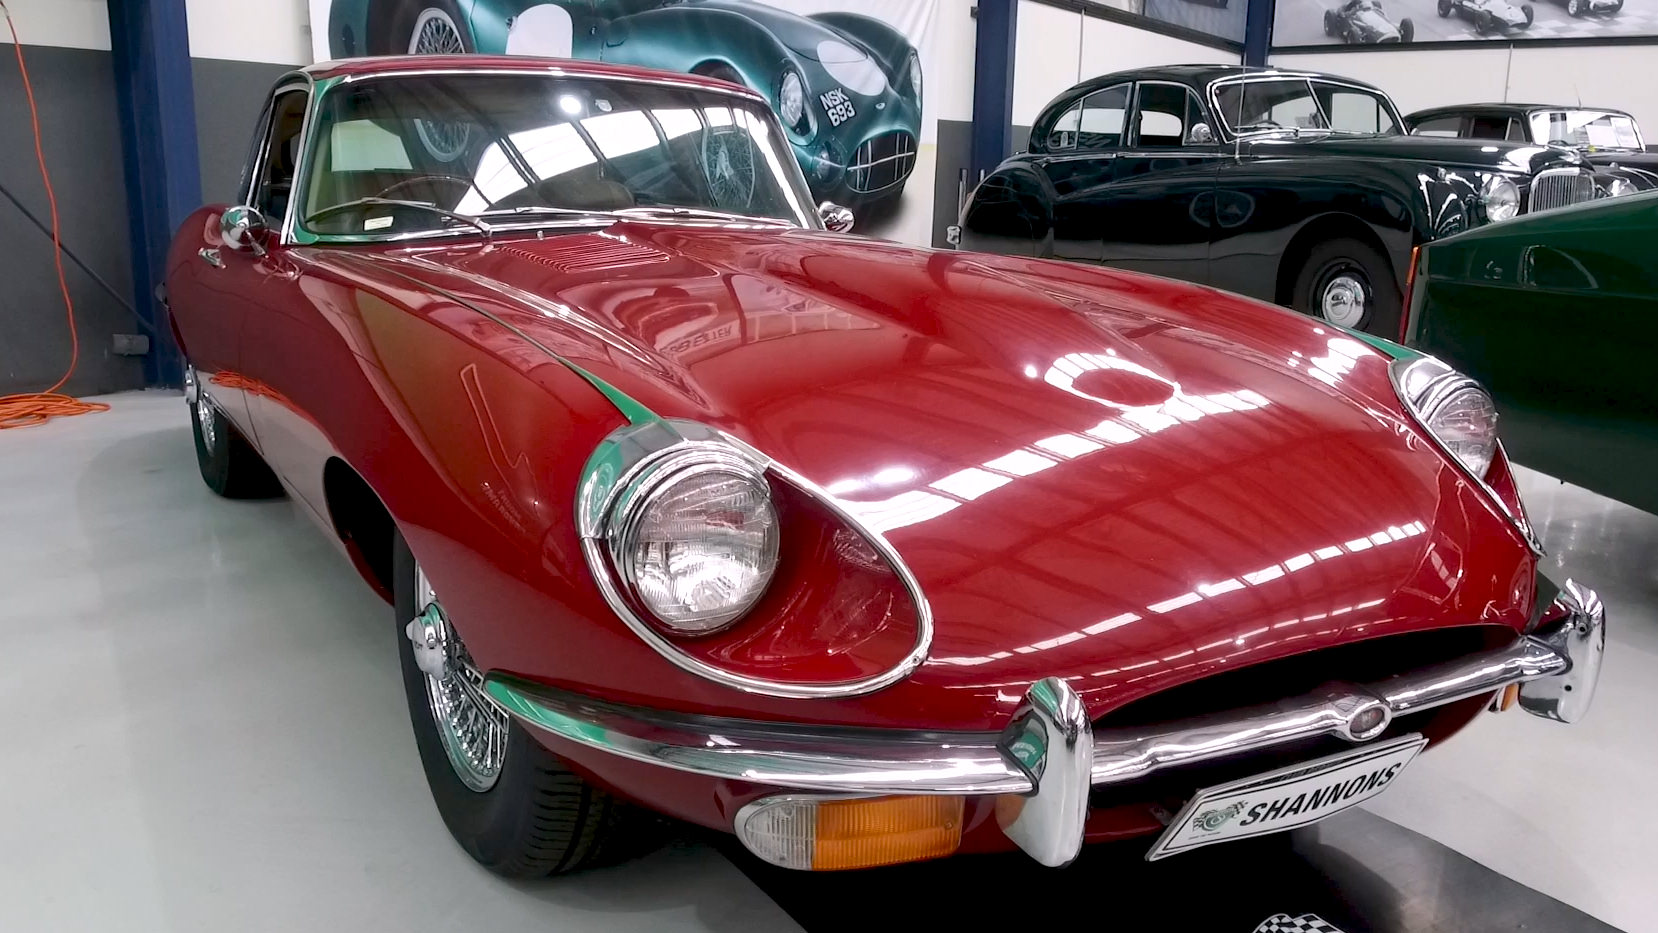 1969 Jaguar E-Type 4.2 Series 2 Coupe - 2021 Shannons Spring Timed Online Auction